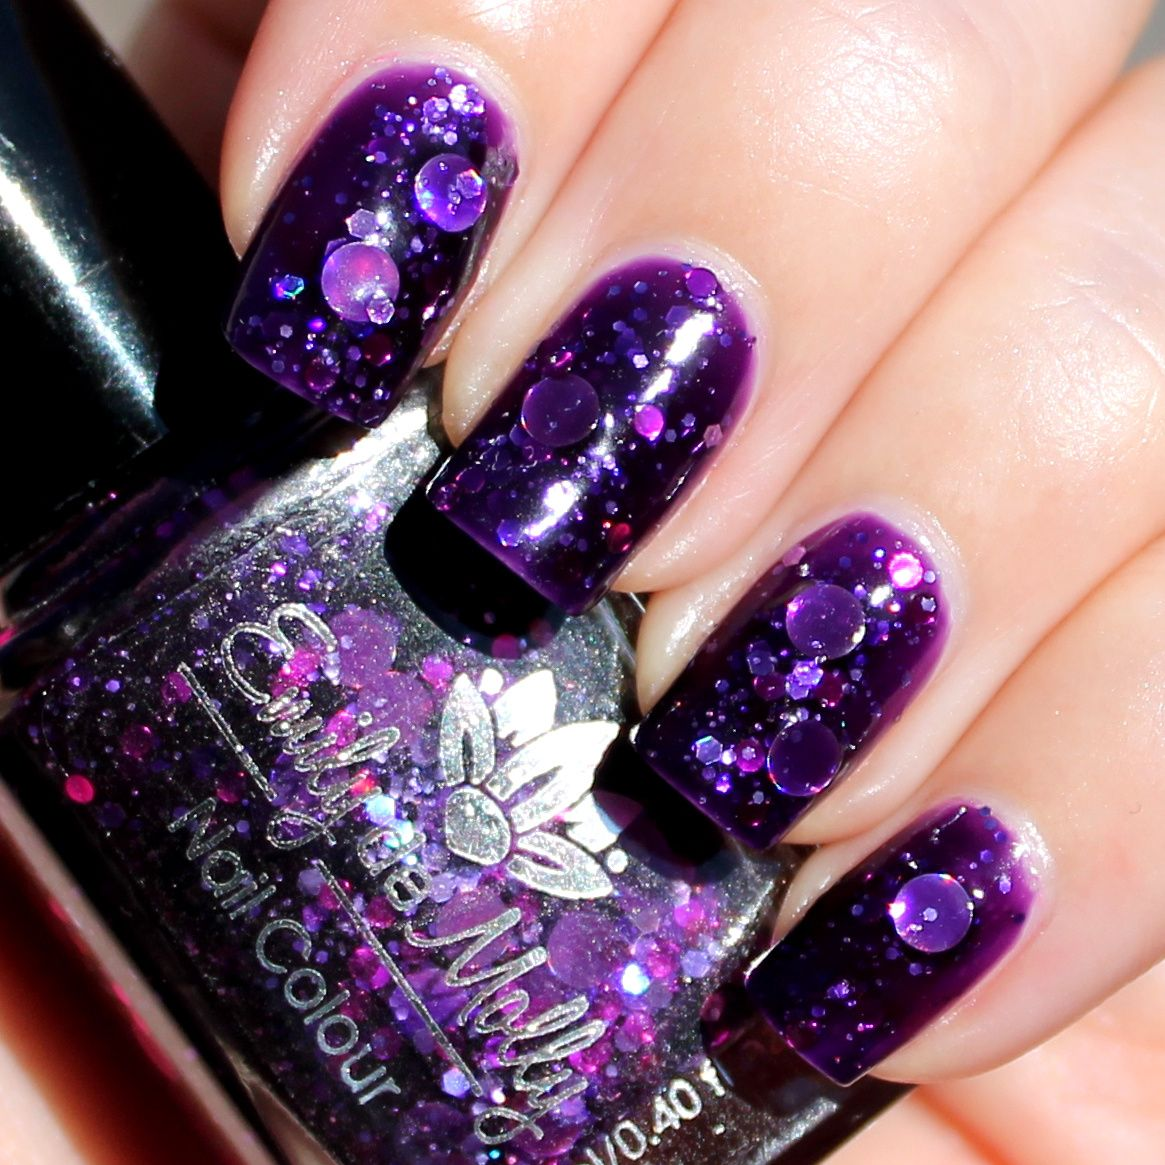 Picture Polish Revolution Glitter Base / Emily de Molly Cosmic Forces / Poshe Top Coat